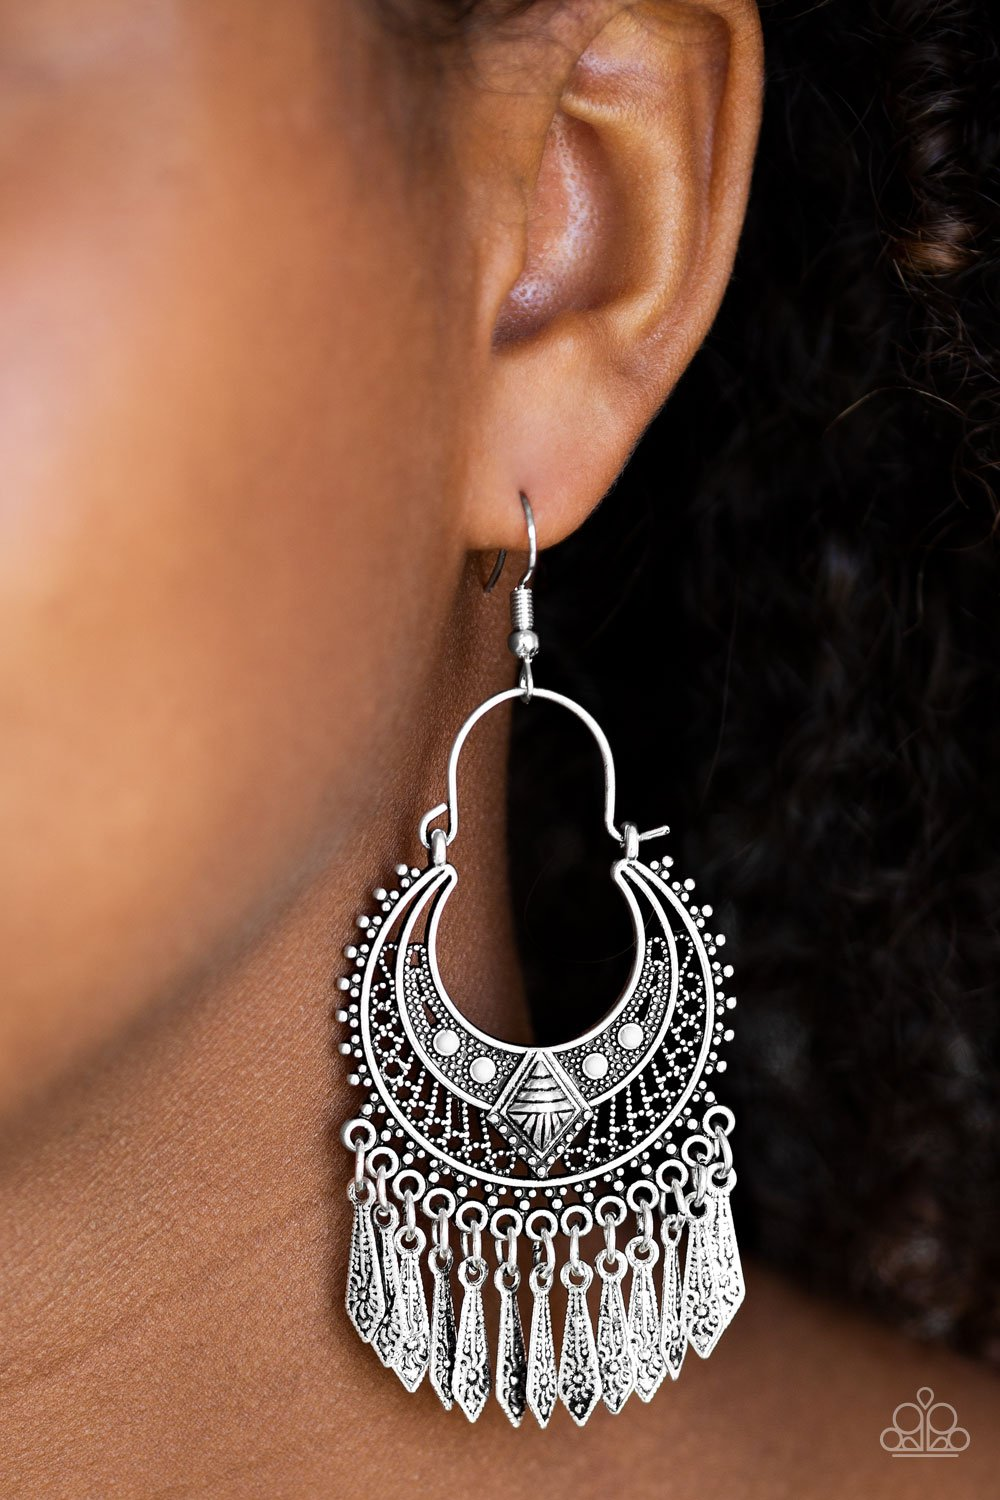 Walk on the Wildside - silver - Paparazzi earrings